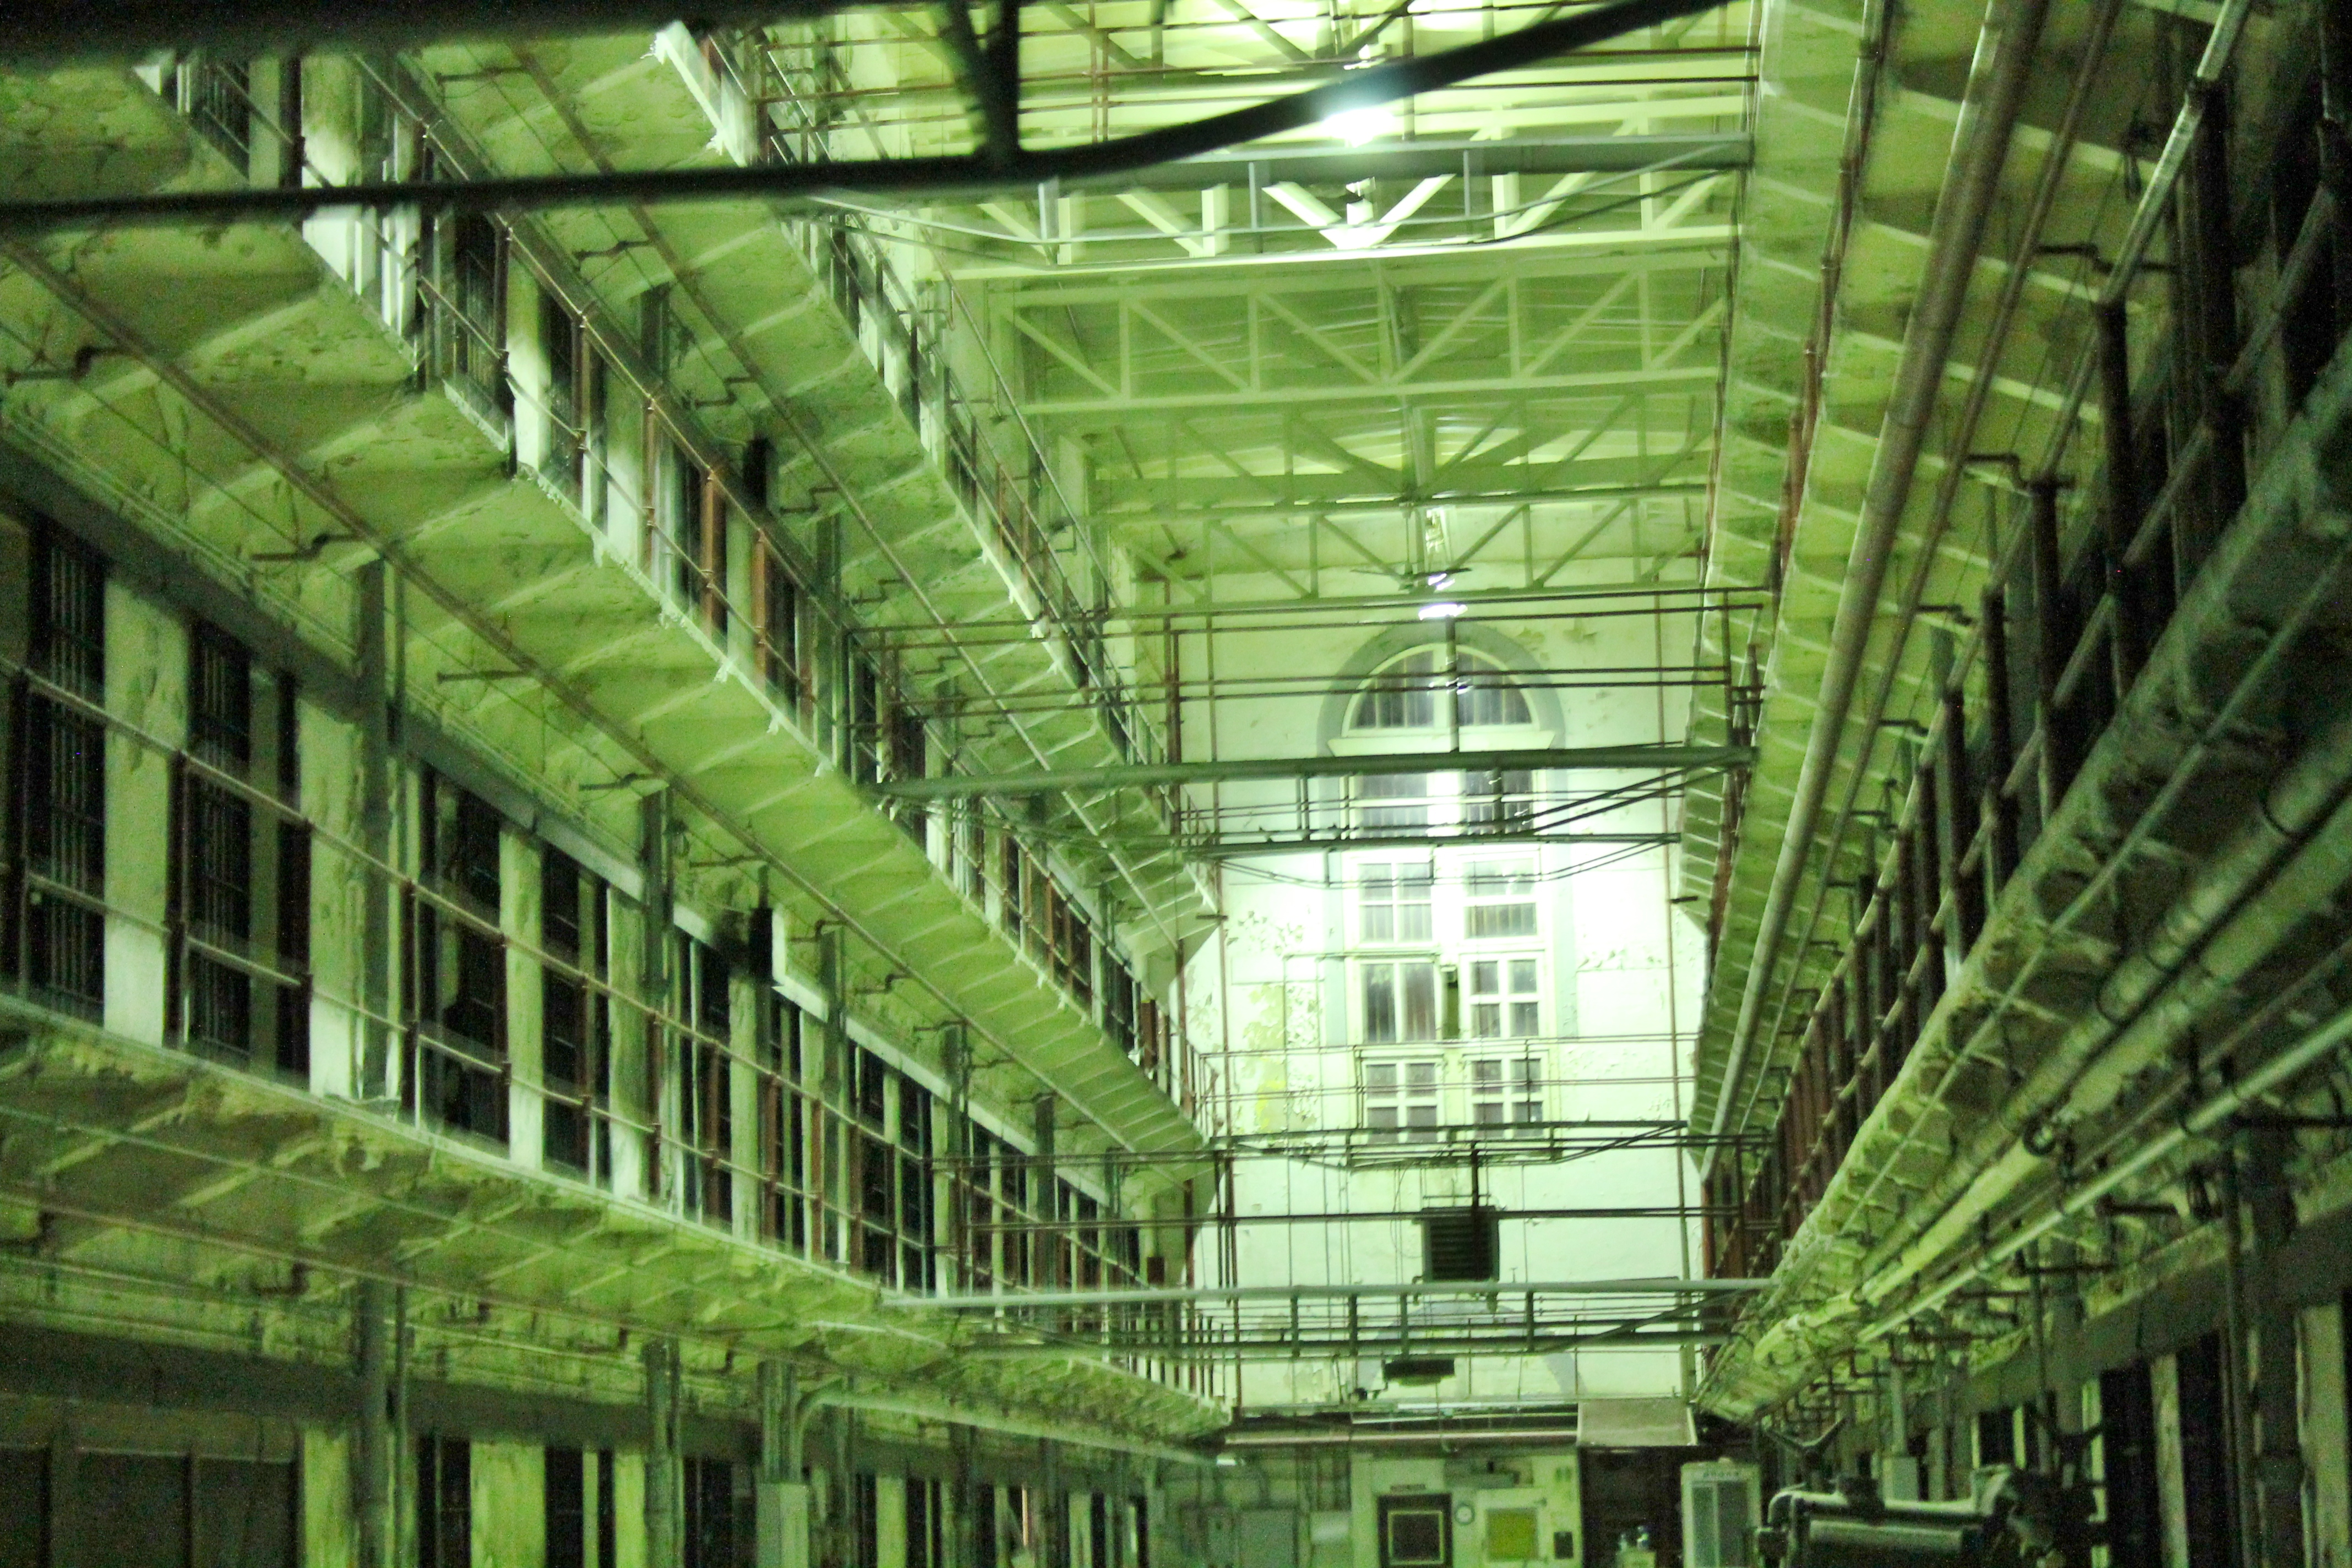 Tour the Missouri State Penitentiary in Jefferson City